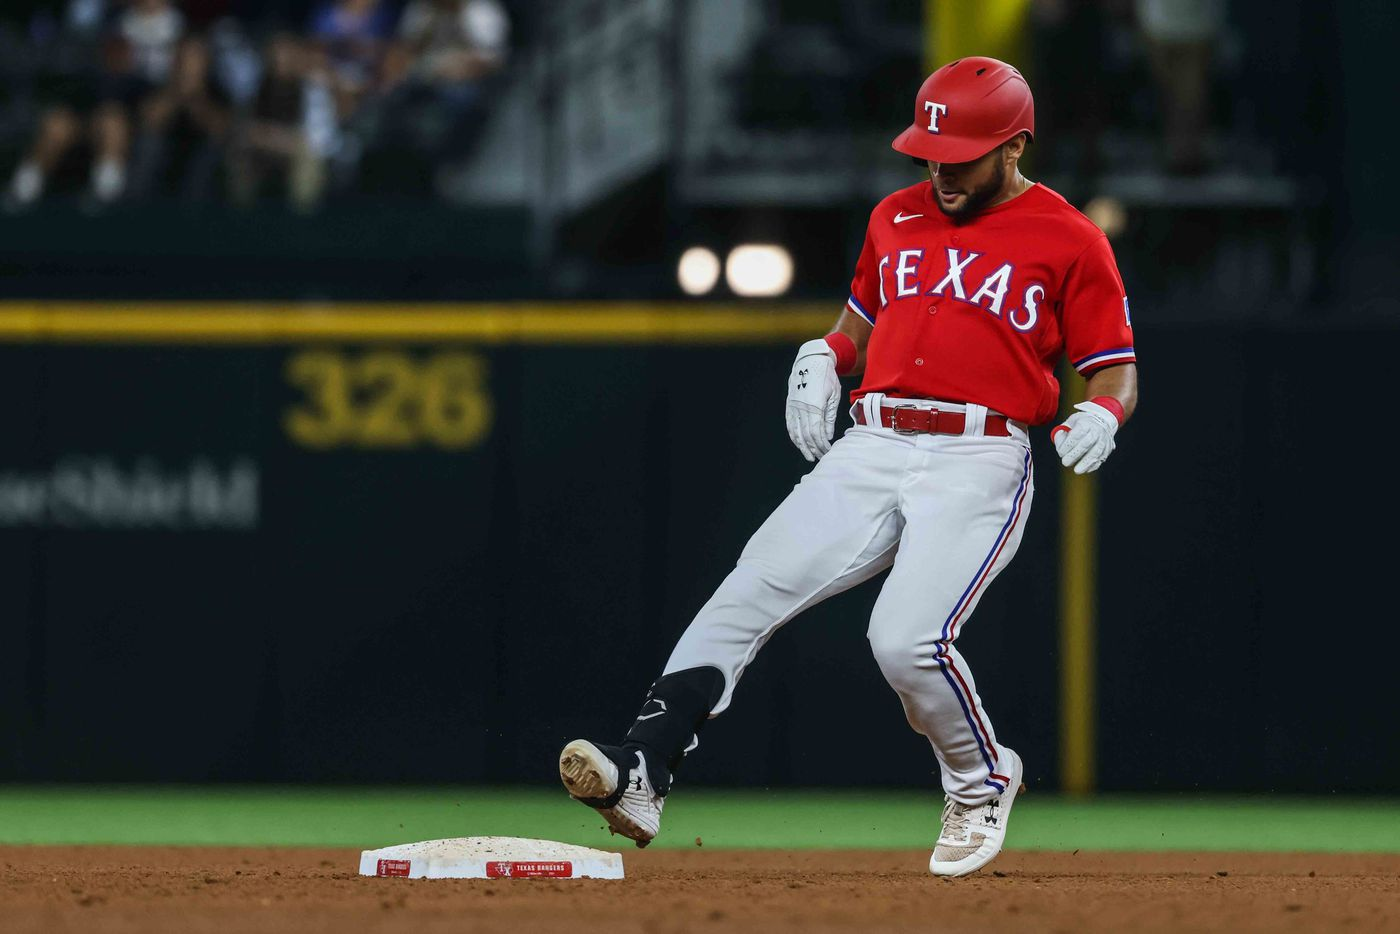 Texas Rangers Jason Martin (50) reaches second base after makes a hit against Seattle Mariners during  fourth inning at Globe Life Field in Arlington, Texas, Friday, July 30, 2021. (Lola Gomez/The Dallas Morning News)